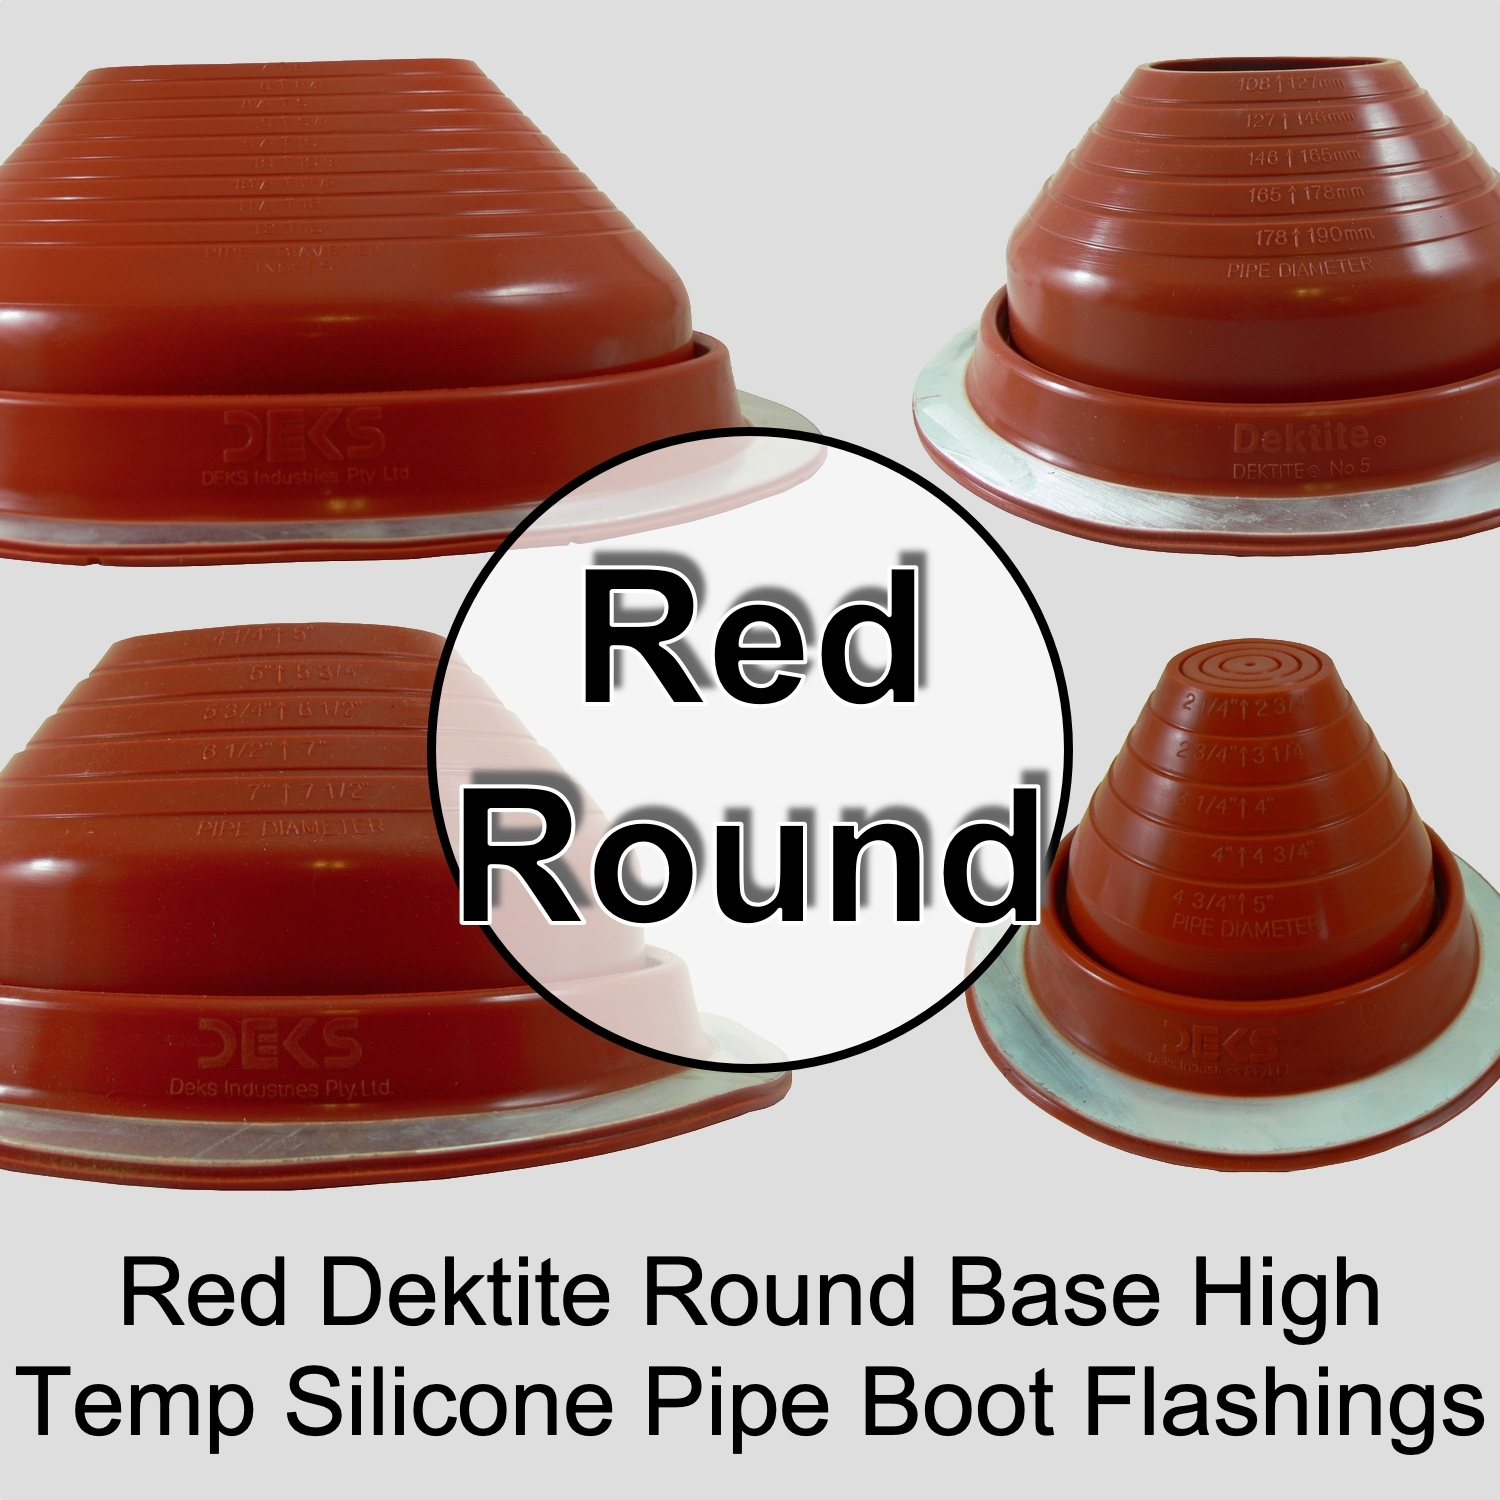 Dektite Pipe Flashing Round Base High Temperature Silicone Flexible Pipe Boots Flashings Dektite Roof Flashing Red Round Base Pipe Flashing Df203re Df205re Df206re Df207re Df208re Df209re 4035910 4036910 4038910 4039910